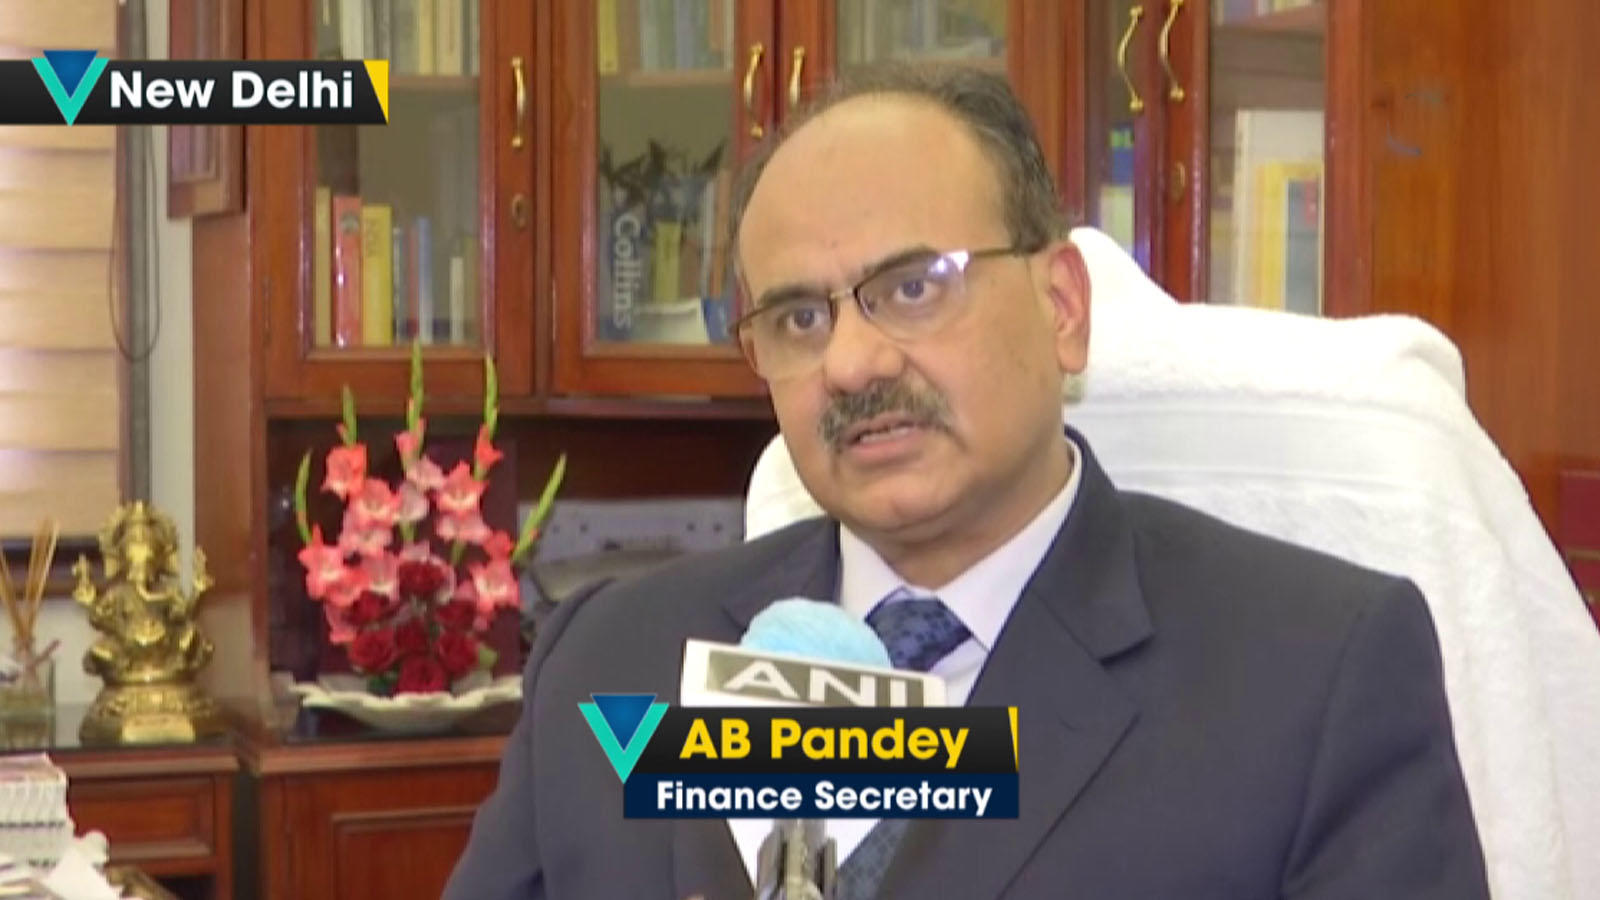 arrested-over-180-people-including-company-directors-for-tax-frauds-finance-secy